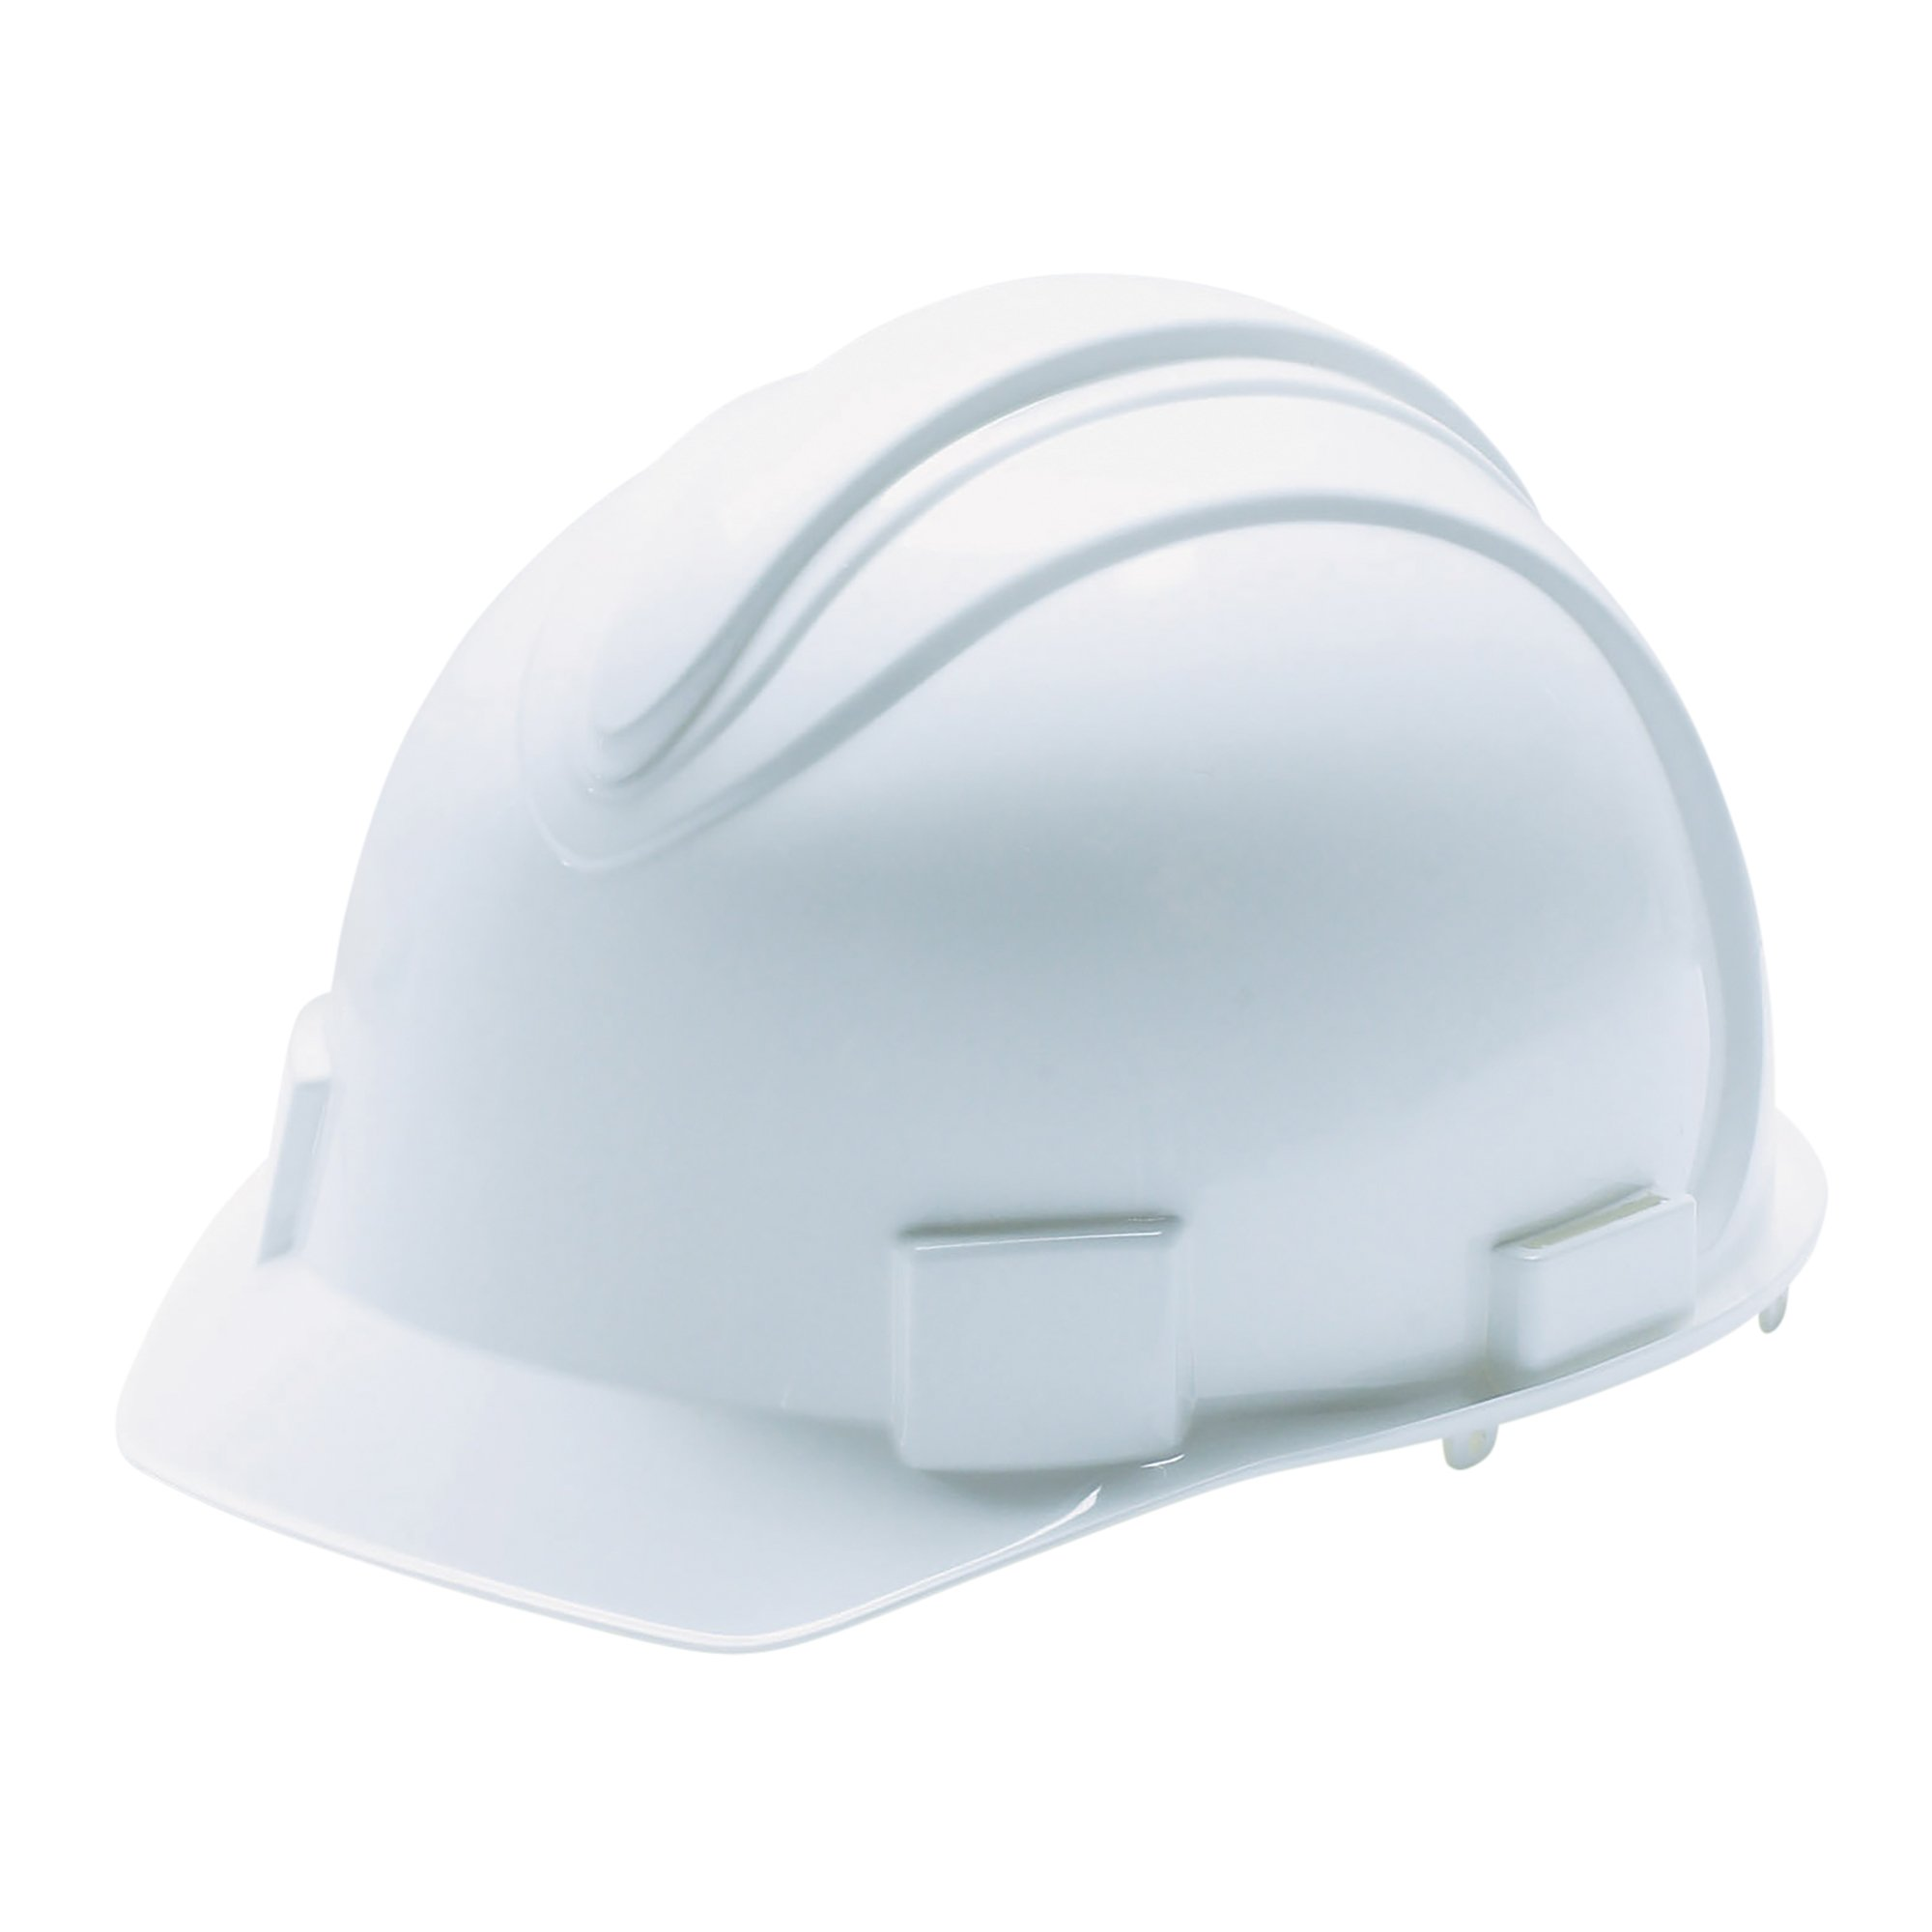 Jackson Safety Charger Hard Hat (20392), Meets ANSI Z89.1 - 2009, Choice of Suspension, White, 12 / Case